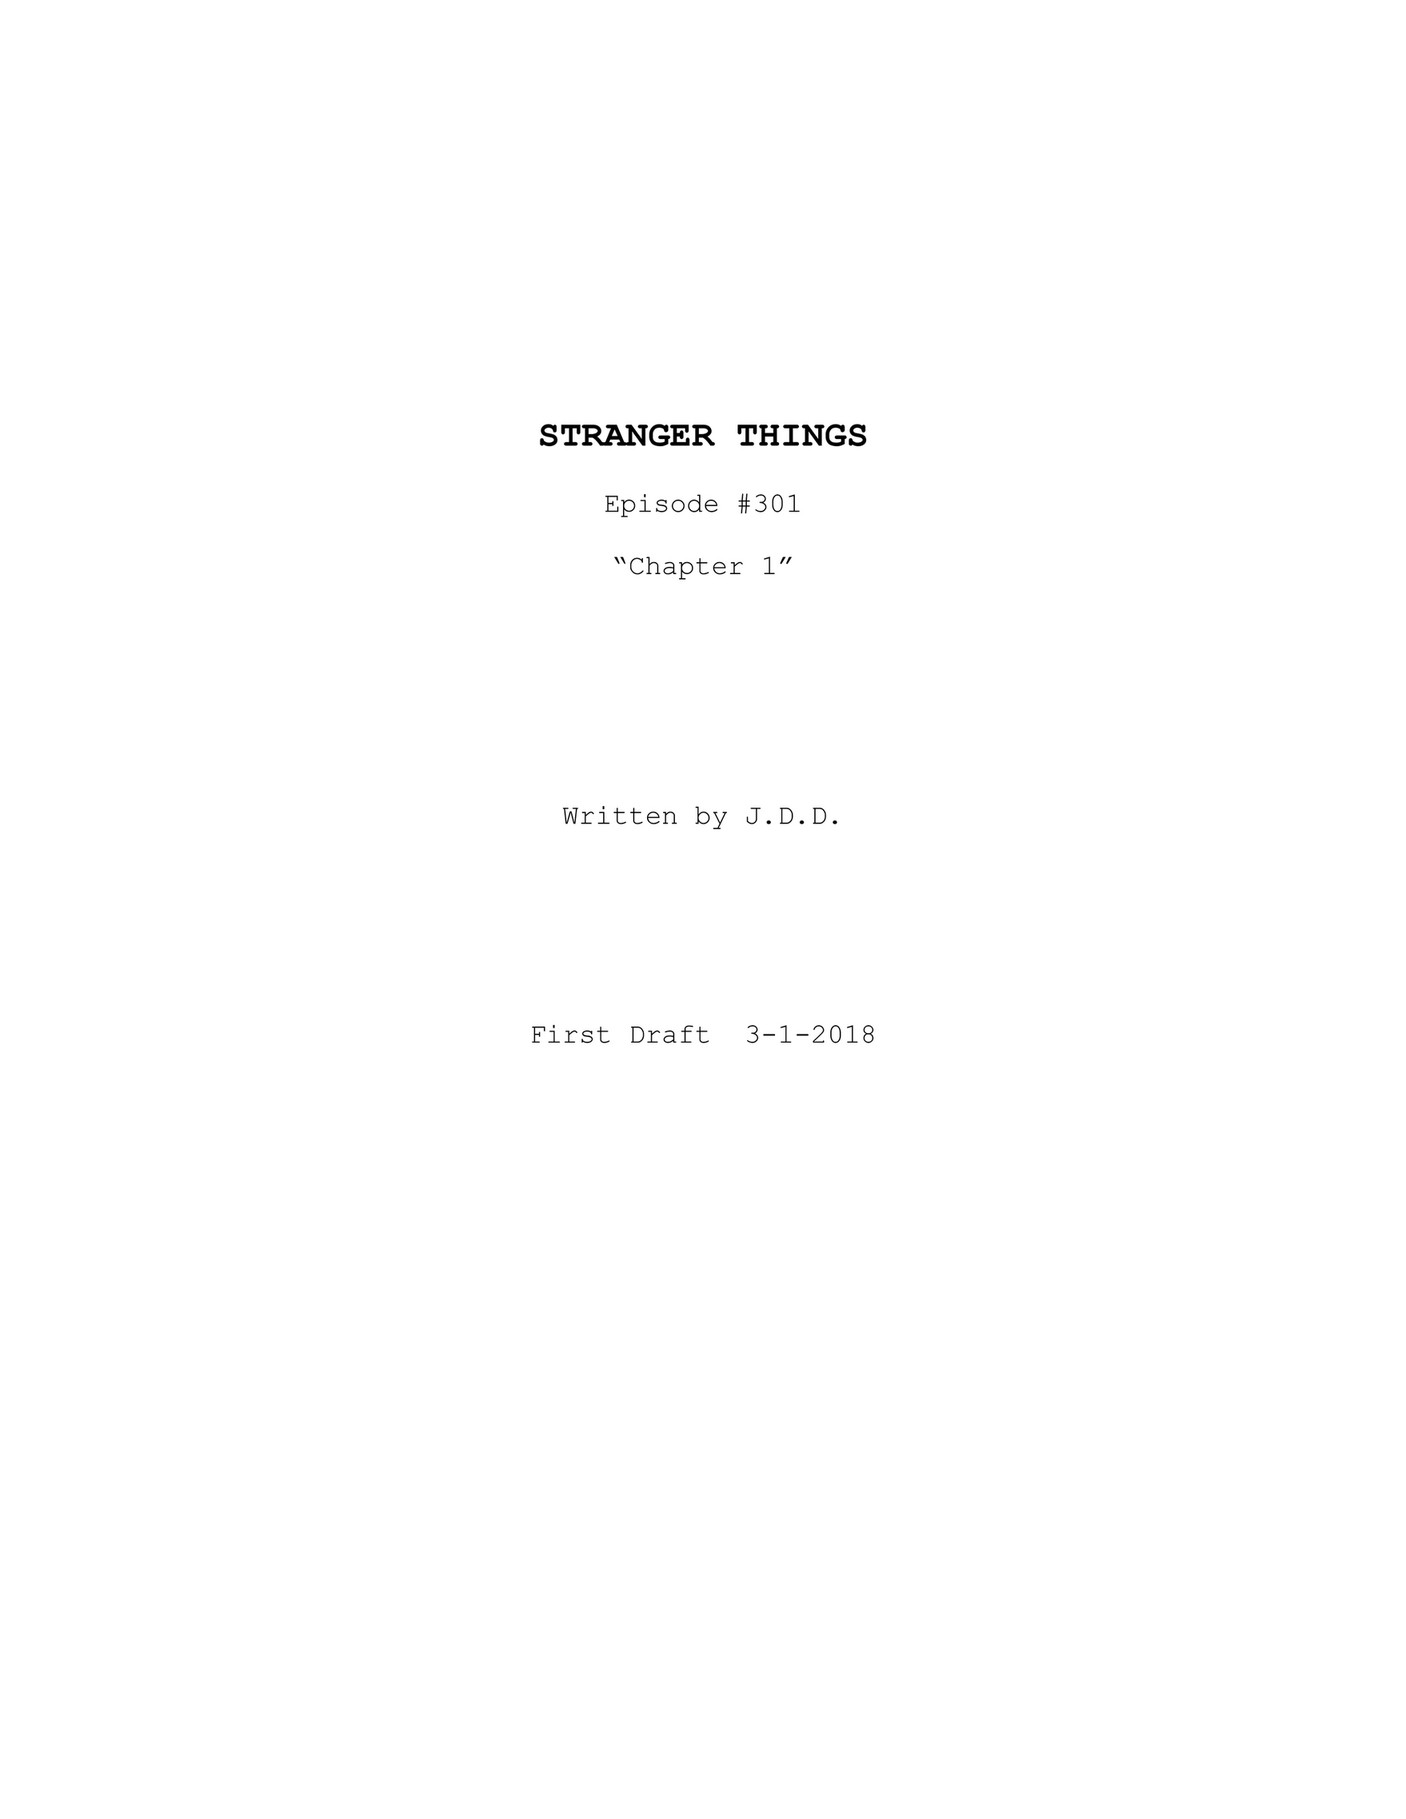 Stranger Things 3 - SCRIPT - Page 1 - Created with Publitas com